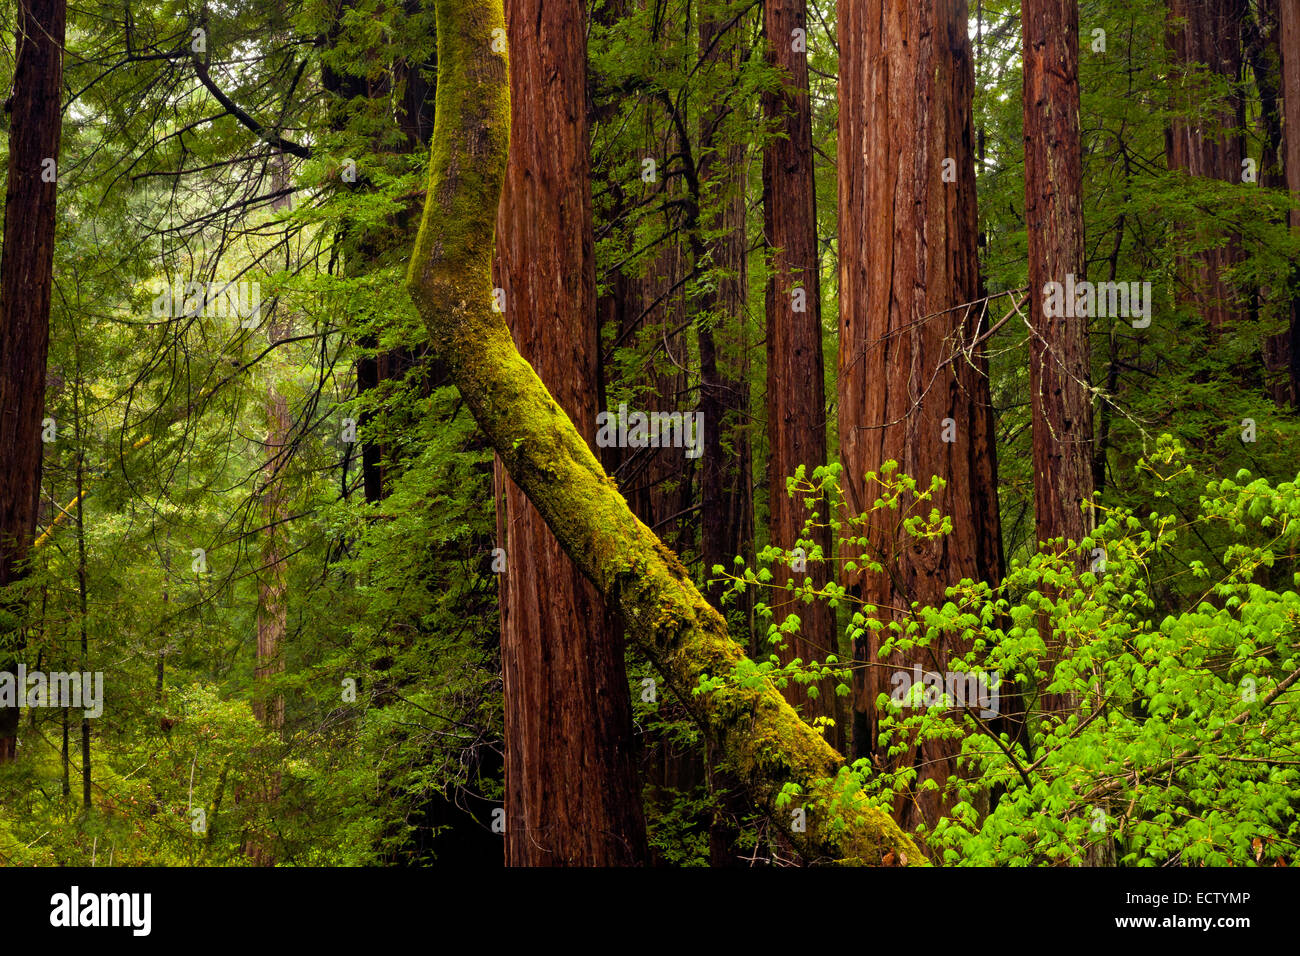 CA02563-00...CALIFORNIA - Mixed forest of redwoods and maples in Muir Woods National Monument. - Stock Image